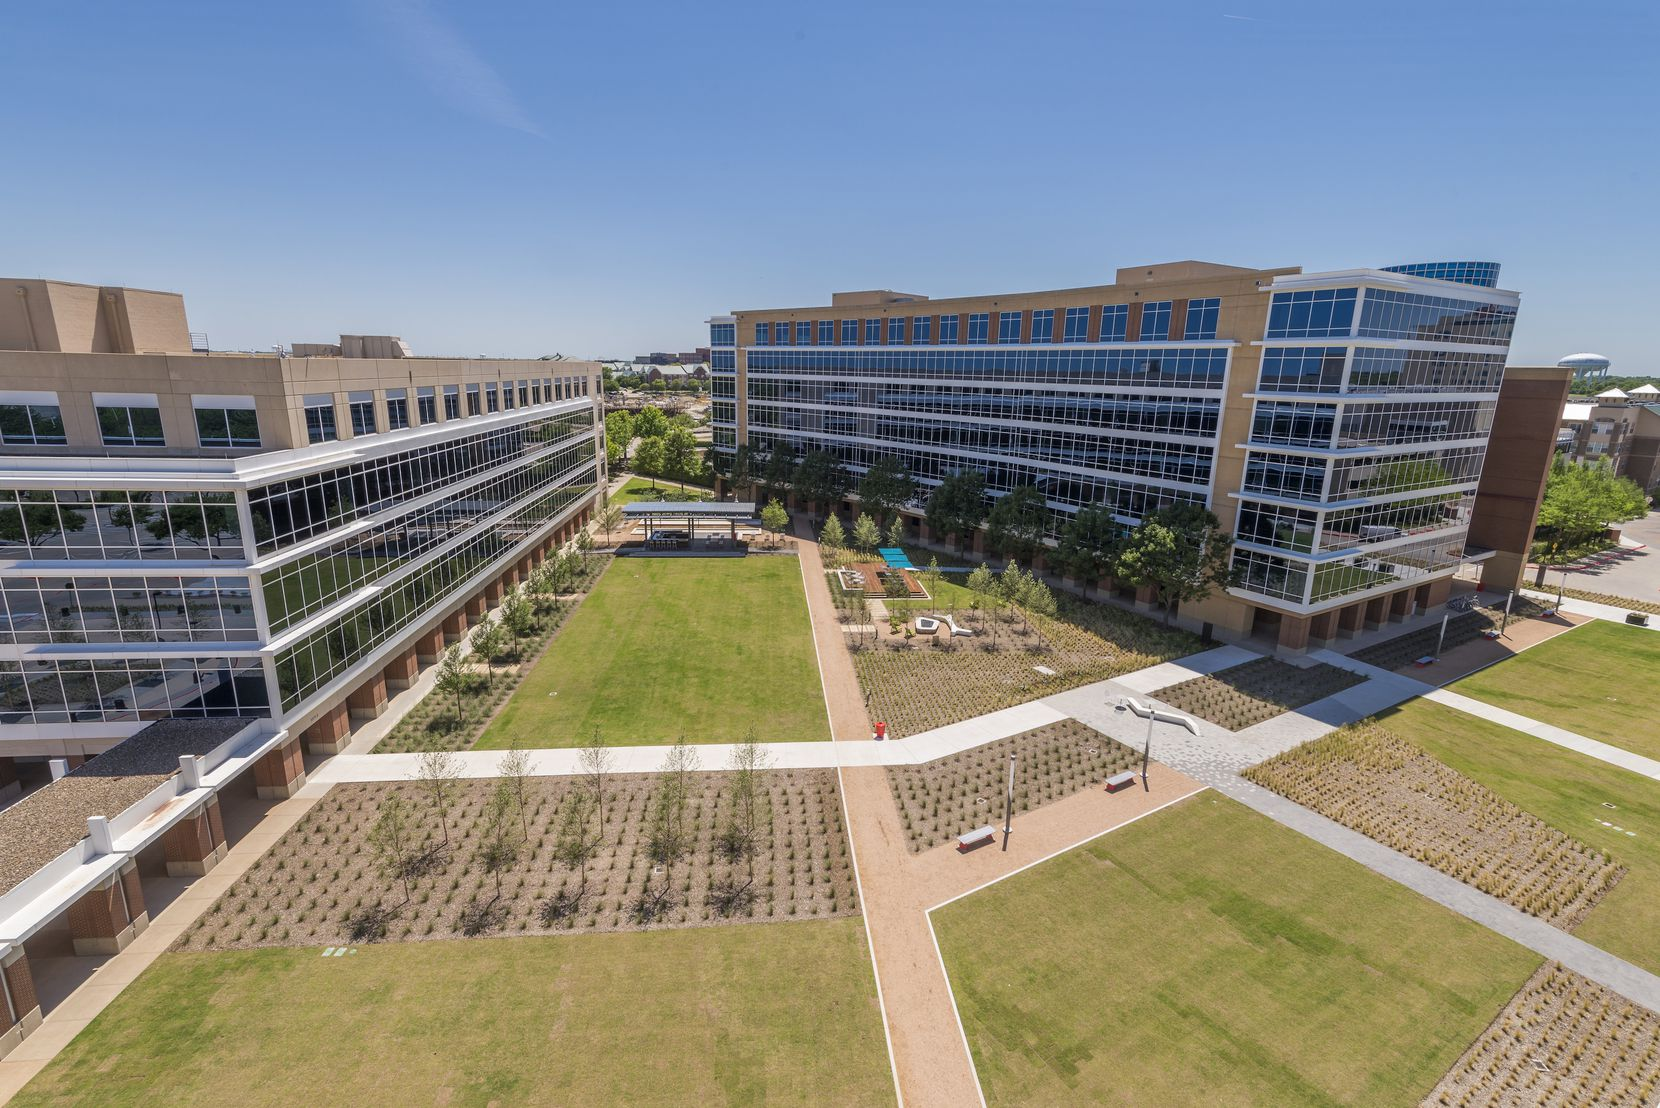 Goldman Sachs plans to bring 500 to 600 workers to the Galatyn Commons office campus in Richardson's Telecom Corridor.